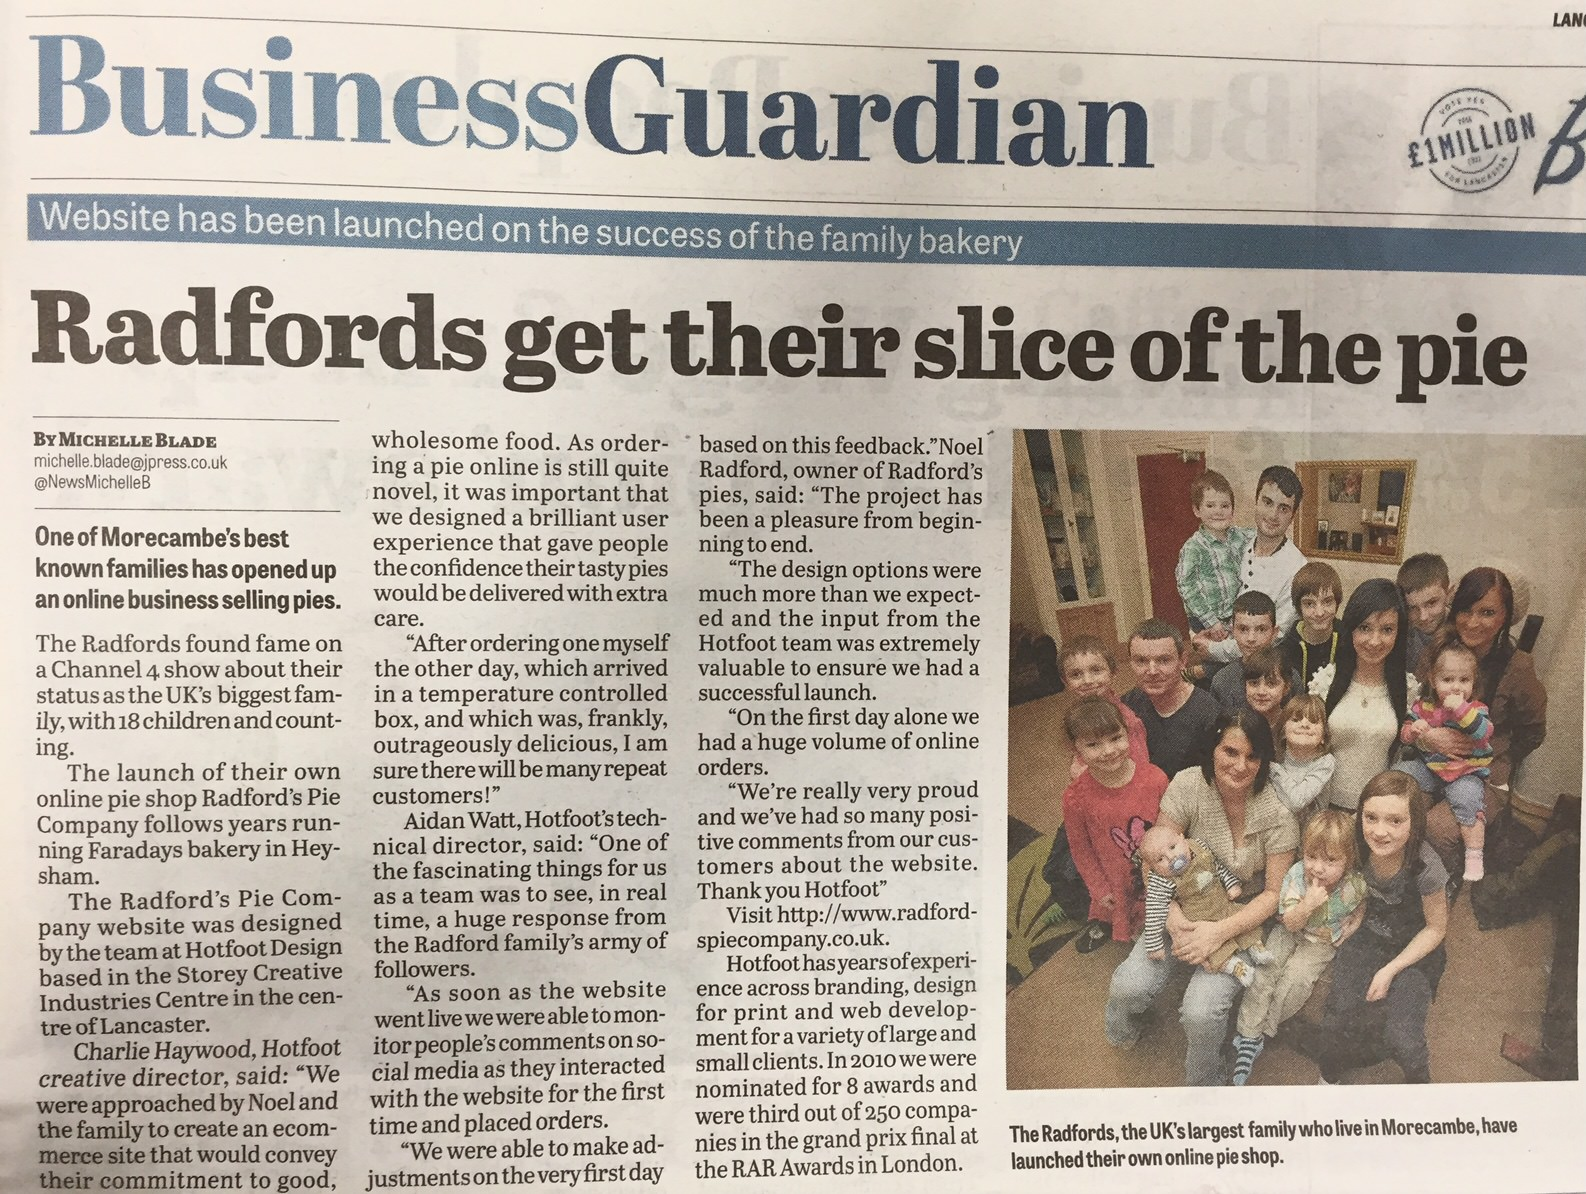 Hotfoot client Radfords Pie Company gets another slice of media coverage